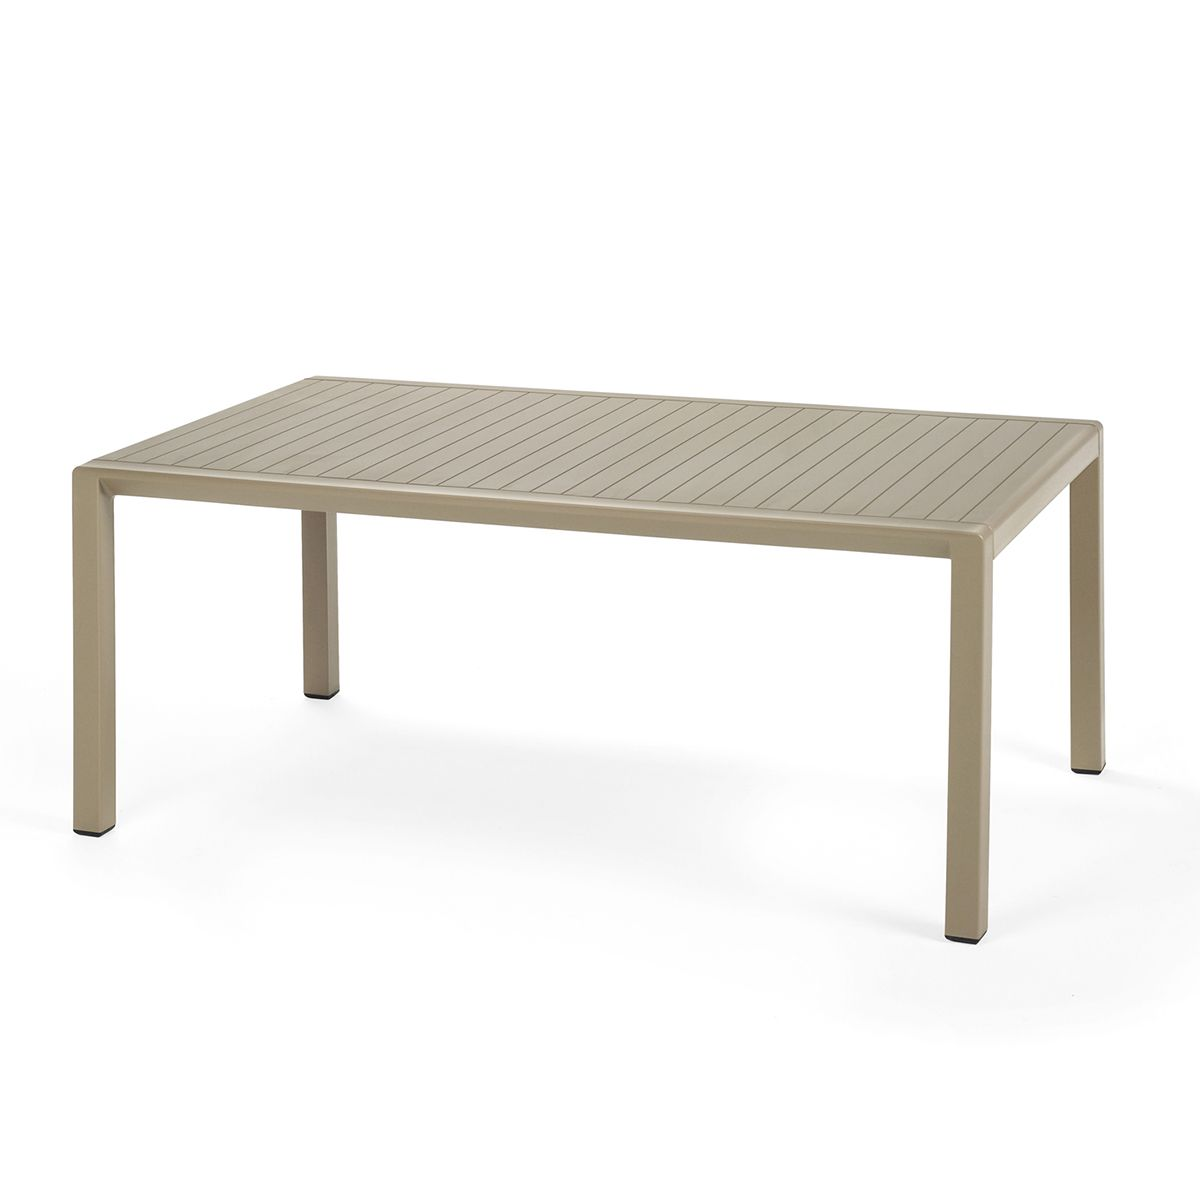 Table basse salon de jardin design aria nardi zendart design - Table de jardin design ...